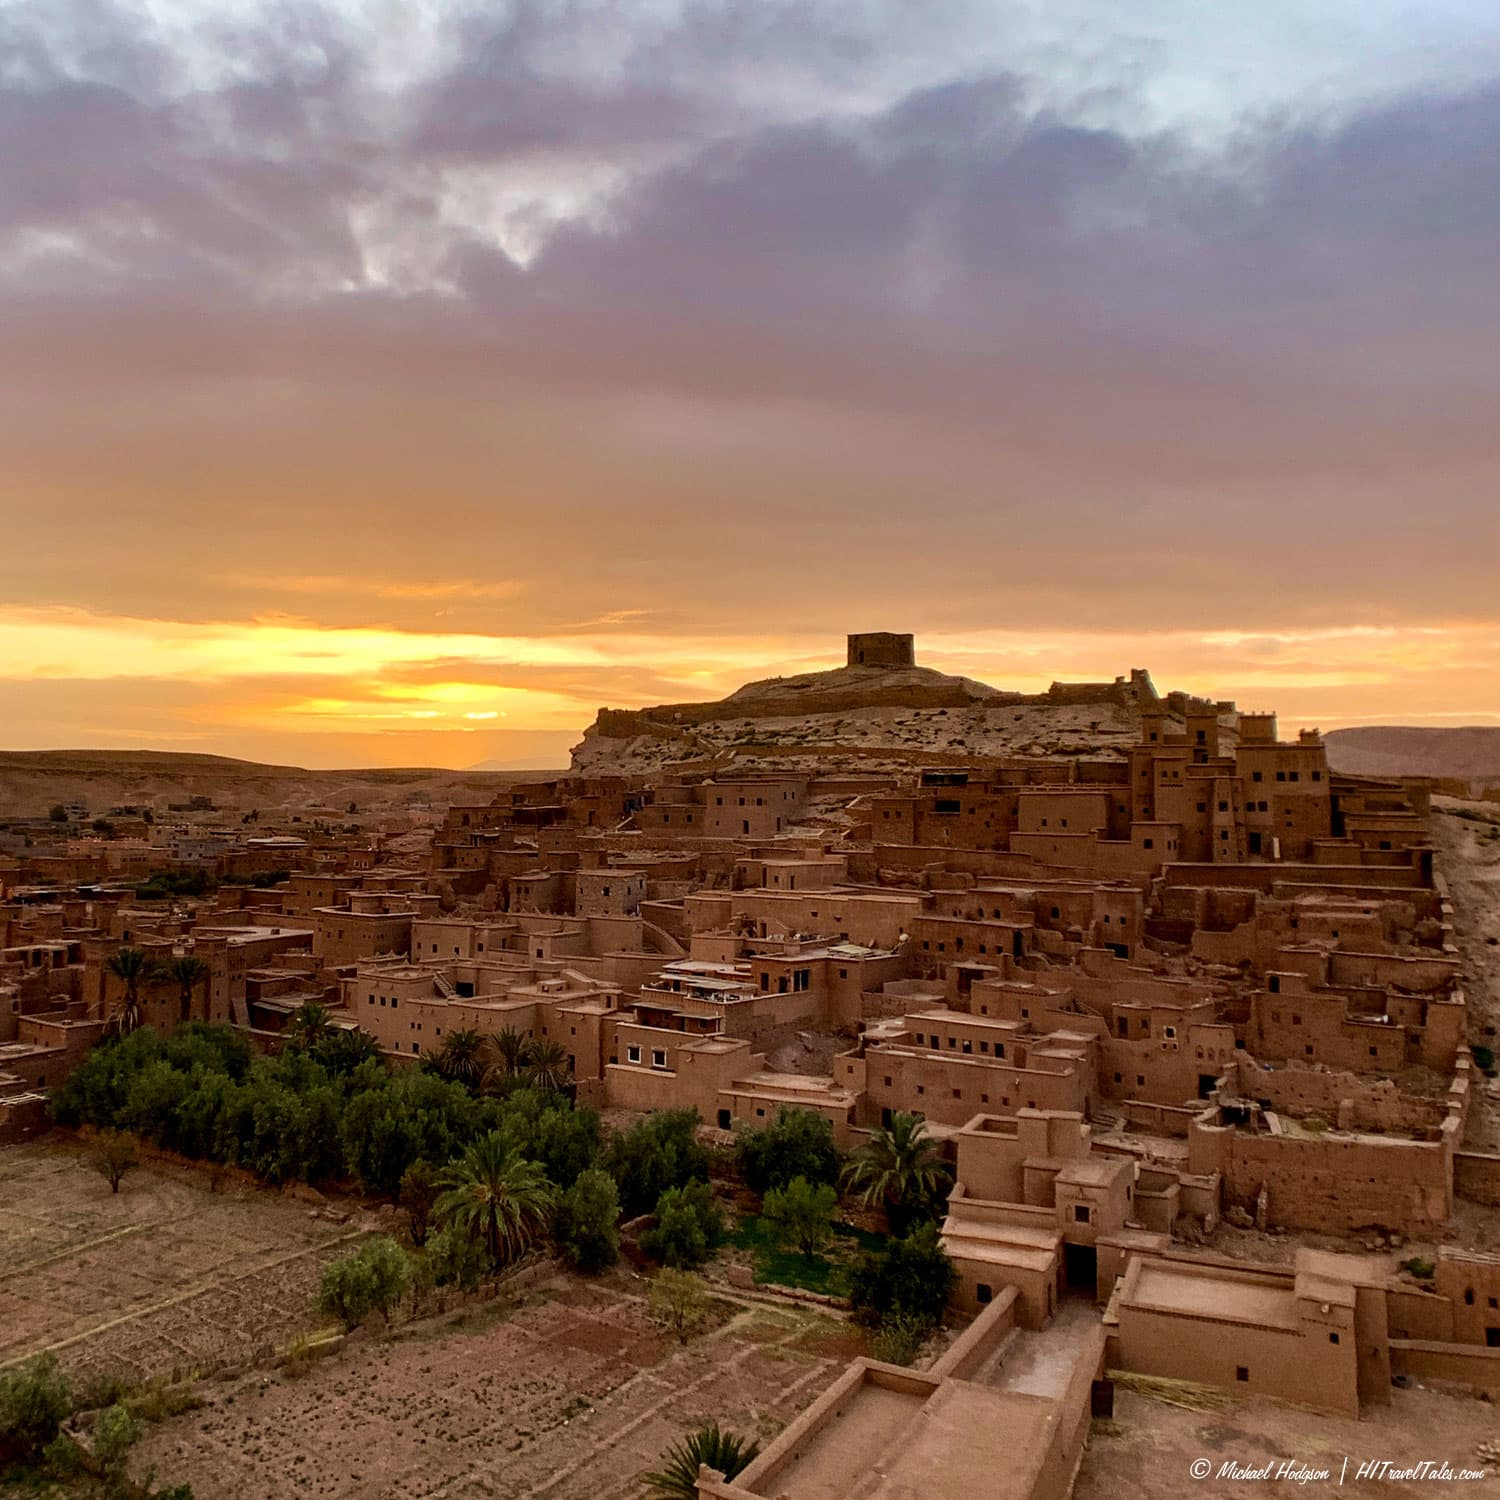 Sunset over Ait Ben Haddou in Morocco